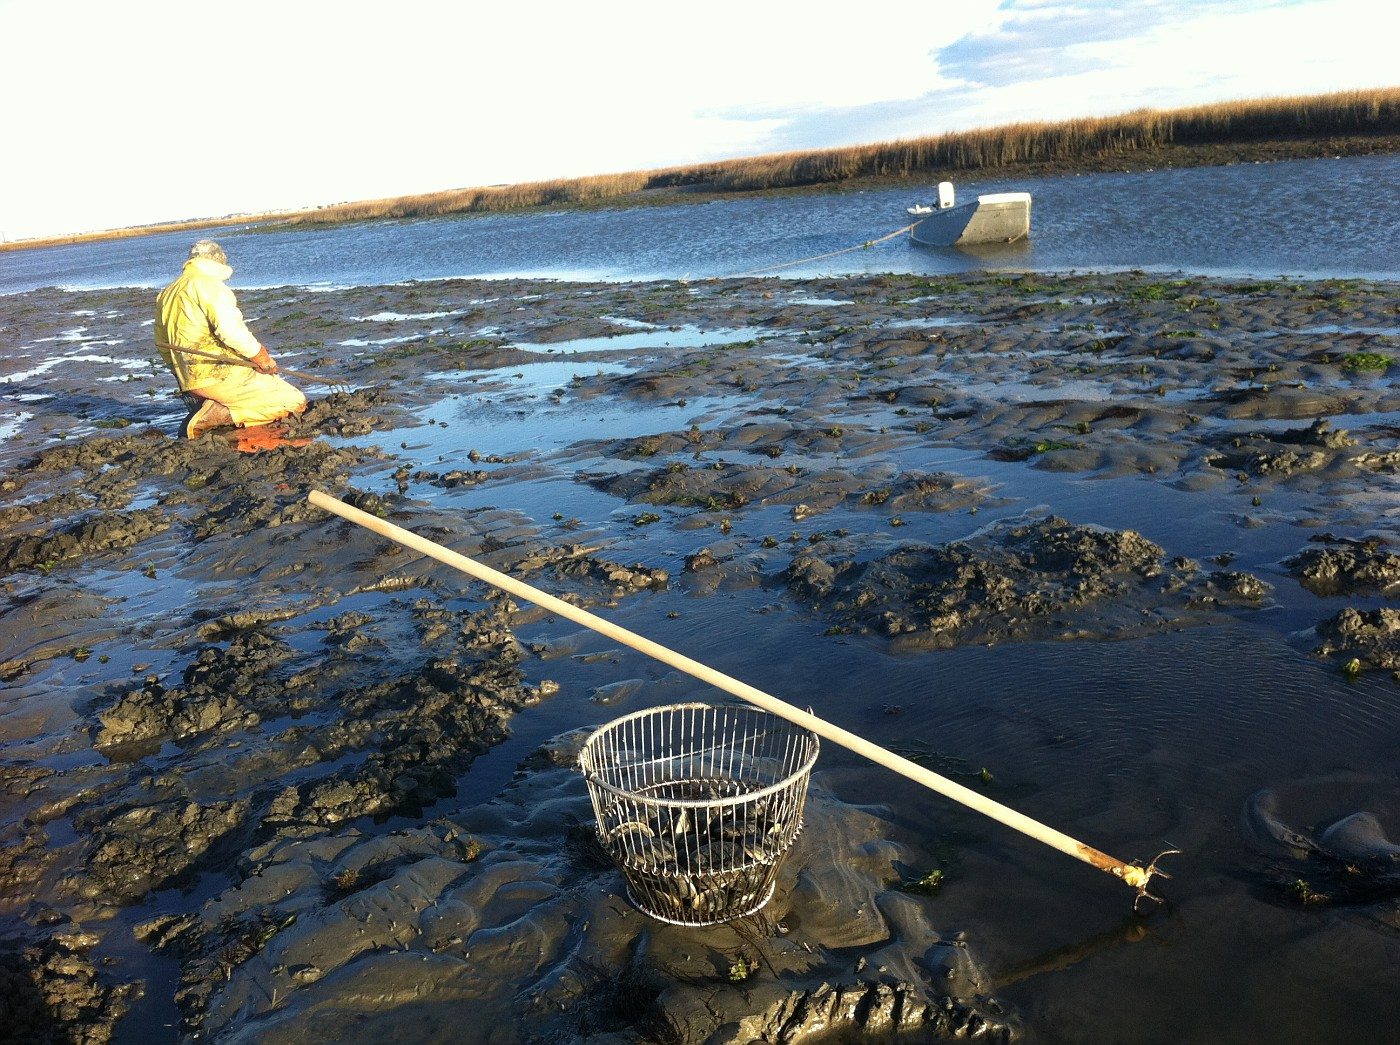 December 28, 2011.   Clamming near Avalon Manor, NJ.  Pasta & Clam Feast Tonight.